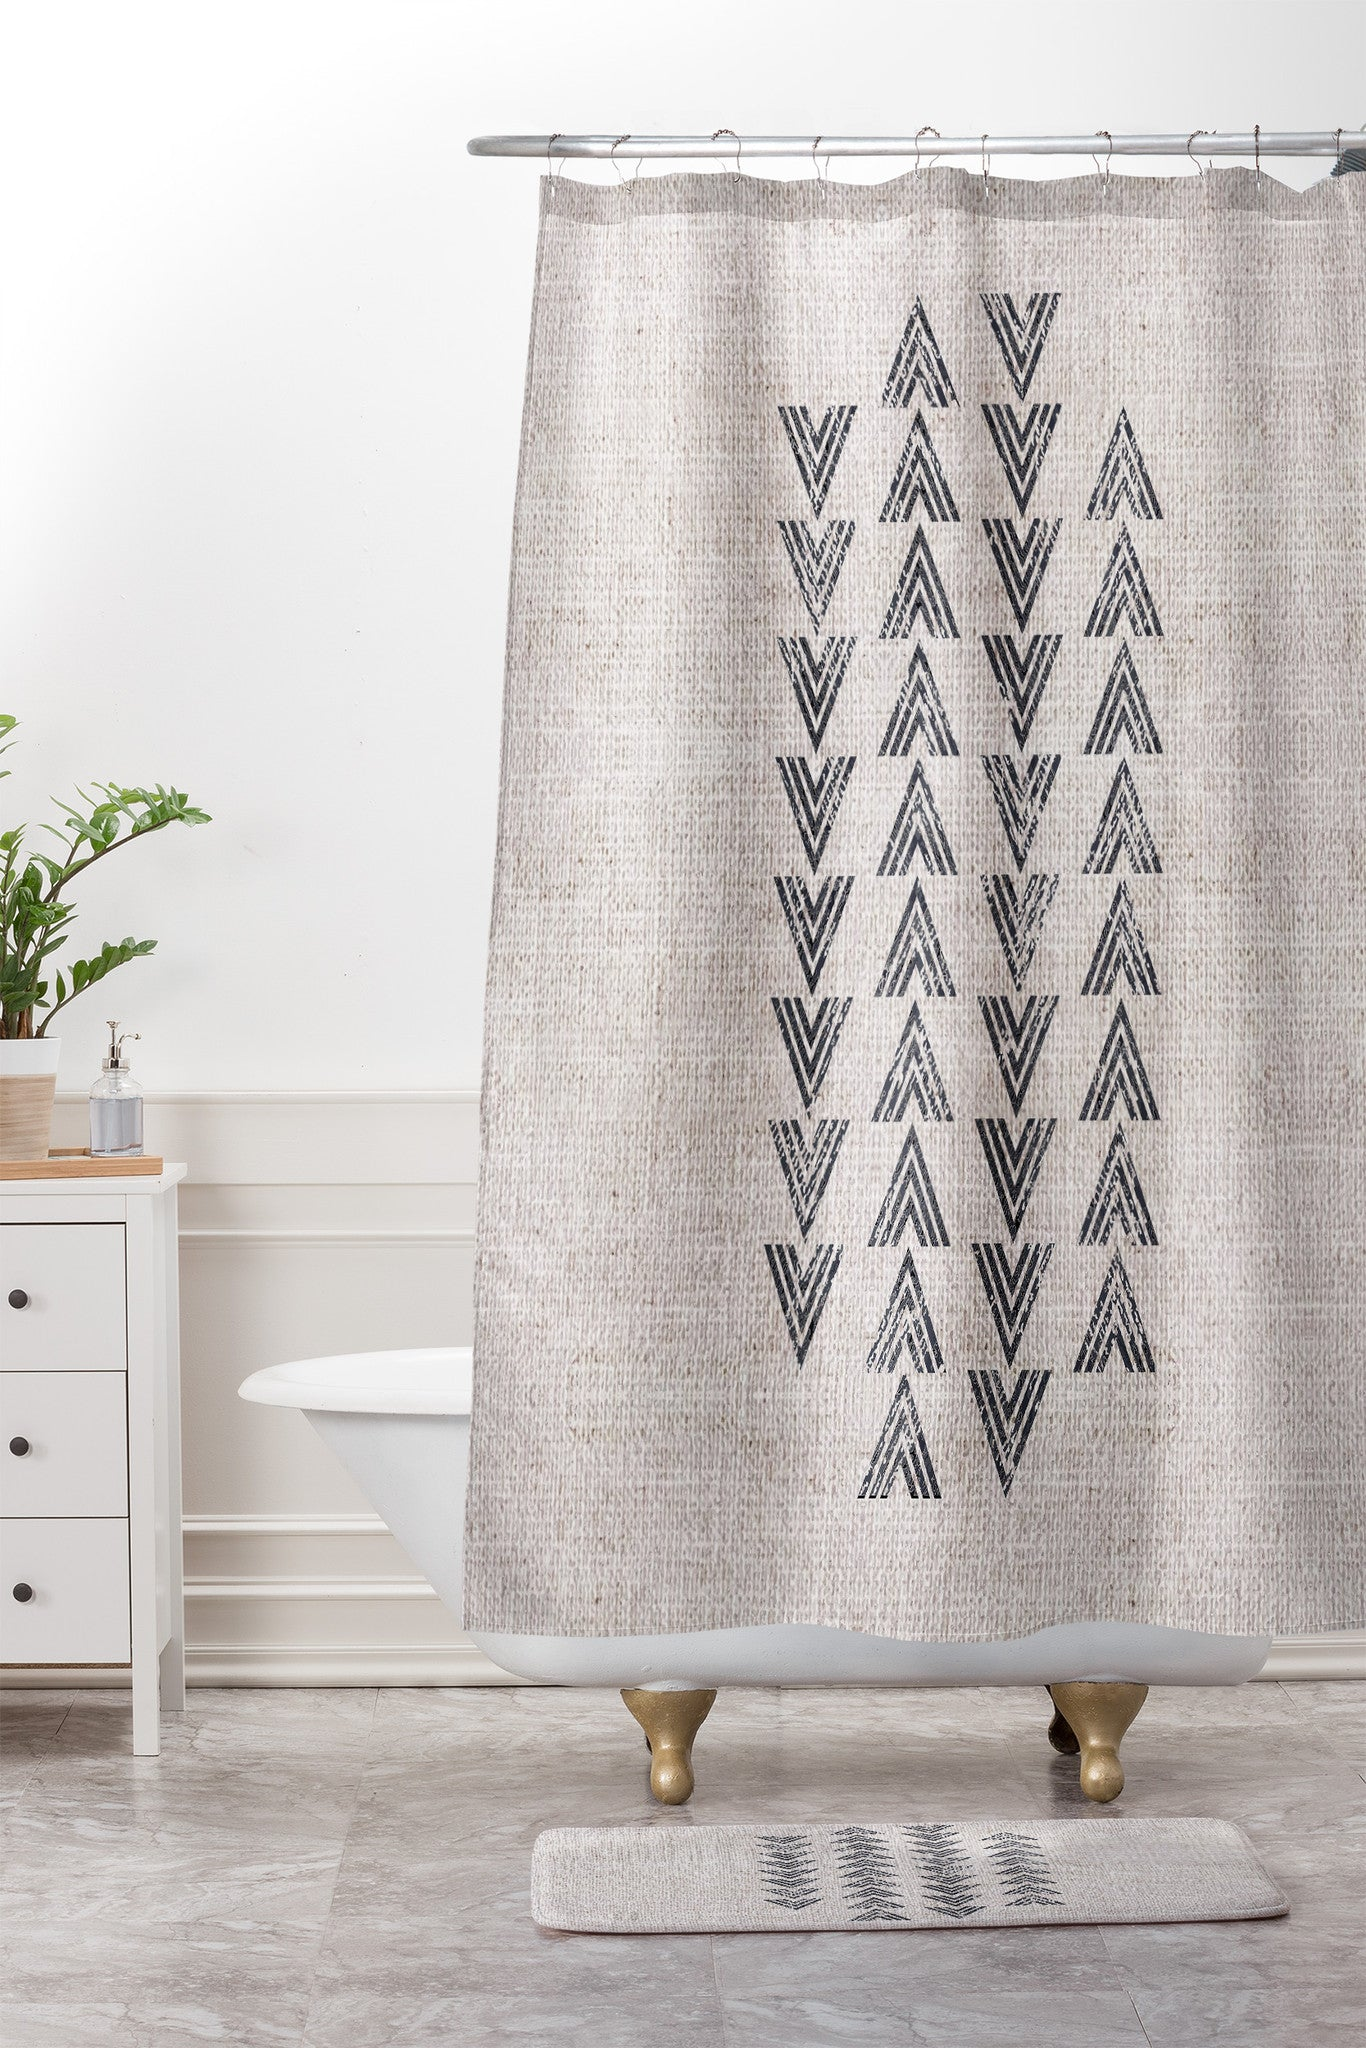 Shower Curtain And Mat By Holli Zollinger